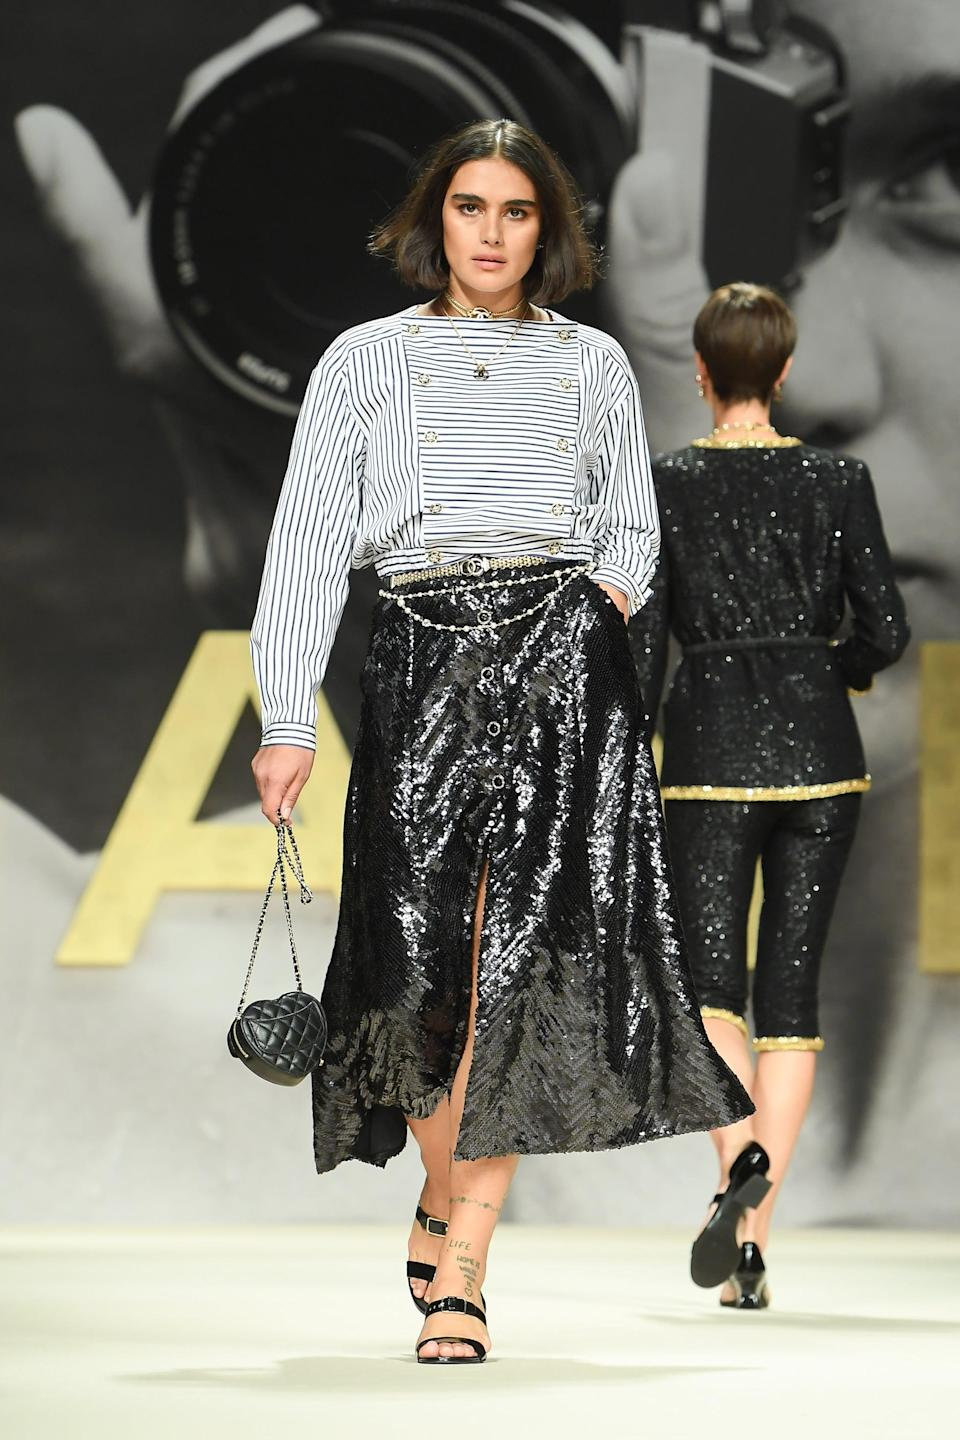 PARIS, FRANCE - OCTOBER 05: (EDITORIAL USE ONLY - For Non-Editorial use please seek approval from Fashion House) A model walks the runway during the Chanel Womenswear Spring/Summer 2022 show as part of Paris Fashion Week on October 05, 2021 in Paris, France. (Photo by Stephane Cardinale - Corbis/Corbis via Getty Images)